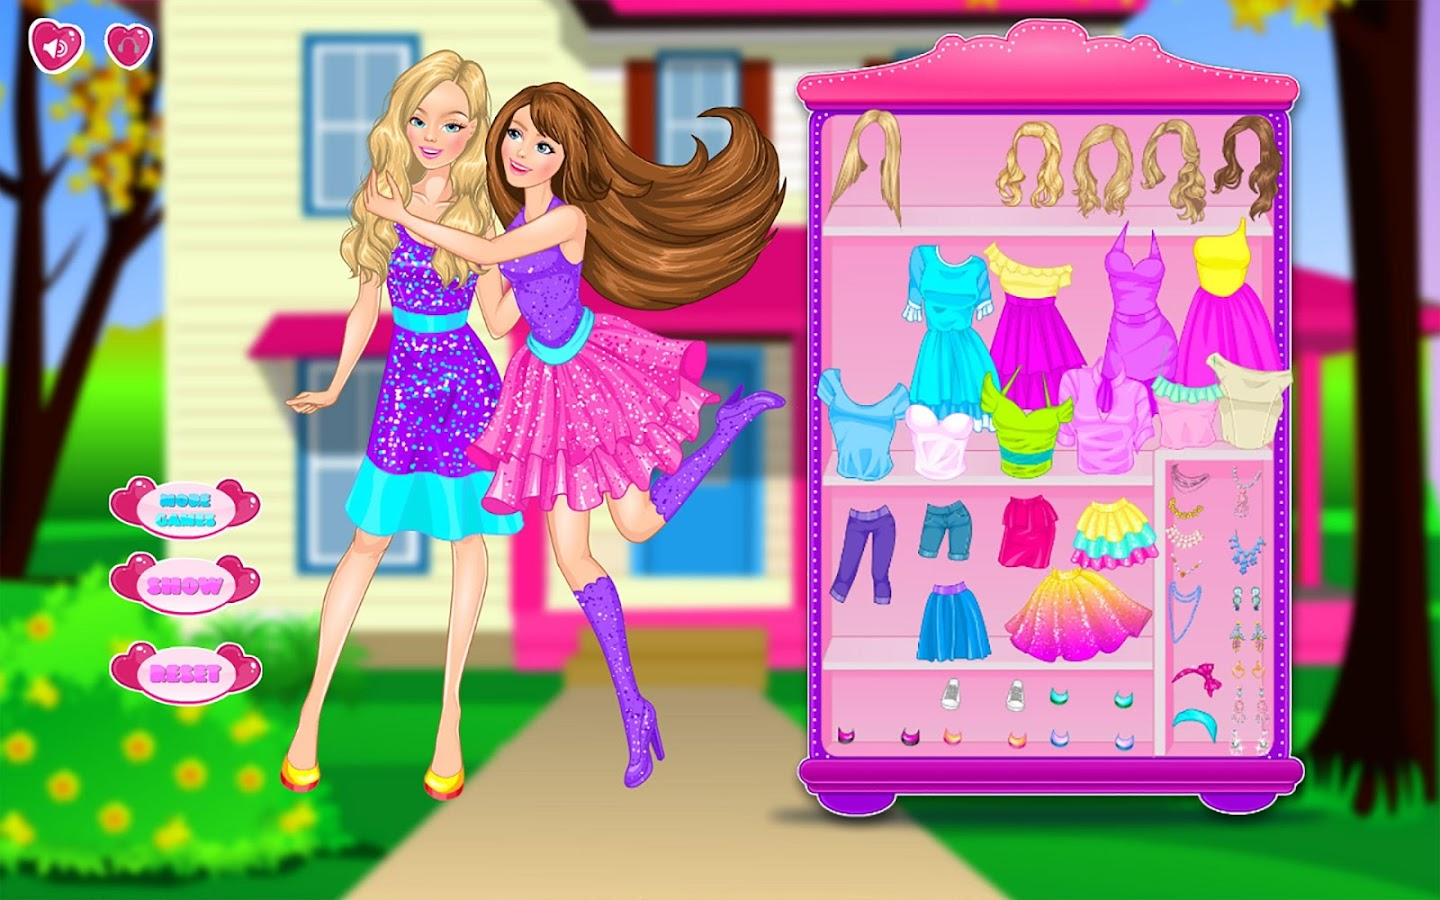 Best Friends Dress Up - Android Apps on Google Play